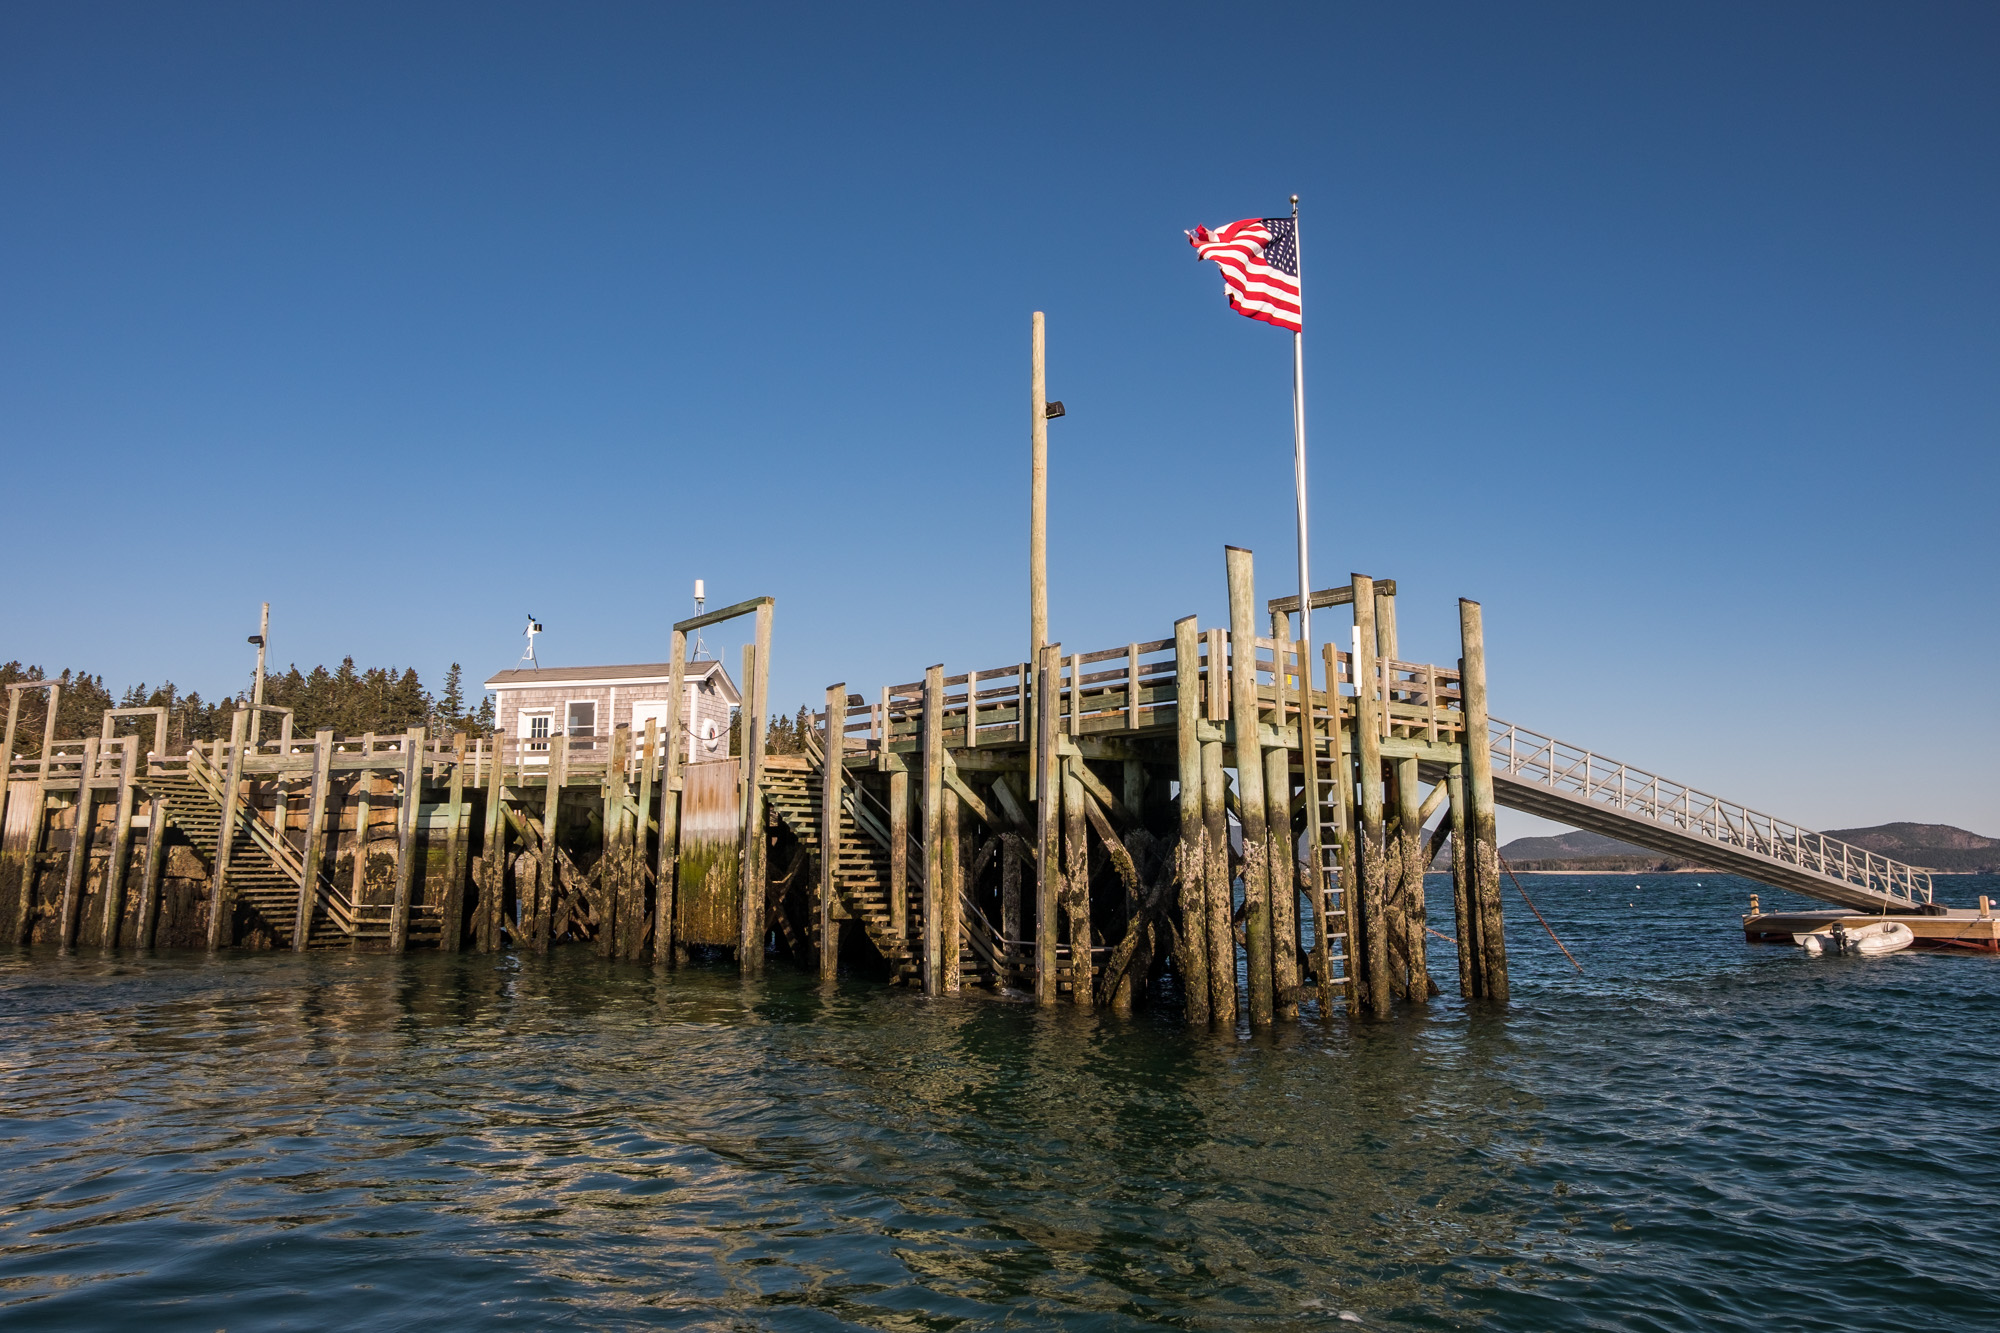 We took the boat ride out to the Cranberry Islands, just for fun.